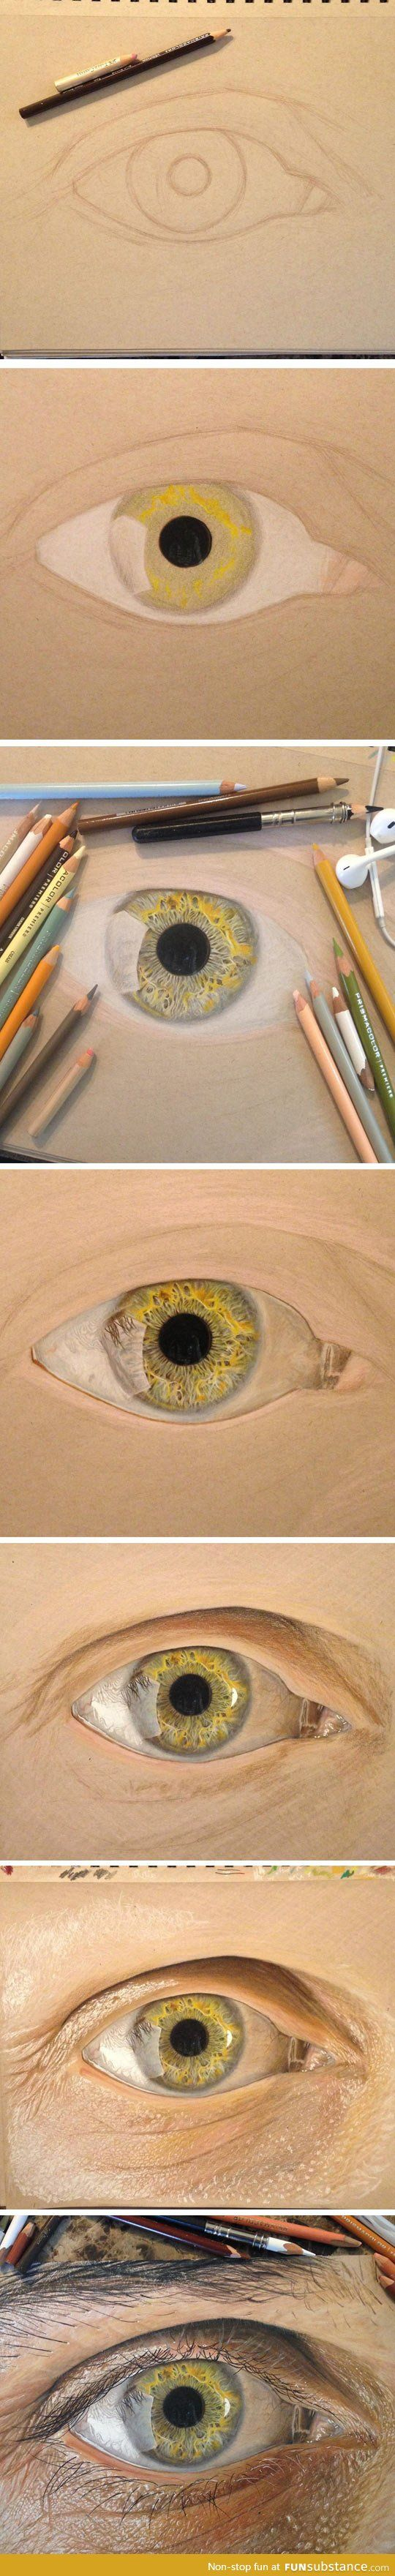 Not just an eye, hyperrealist eyes